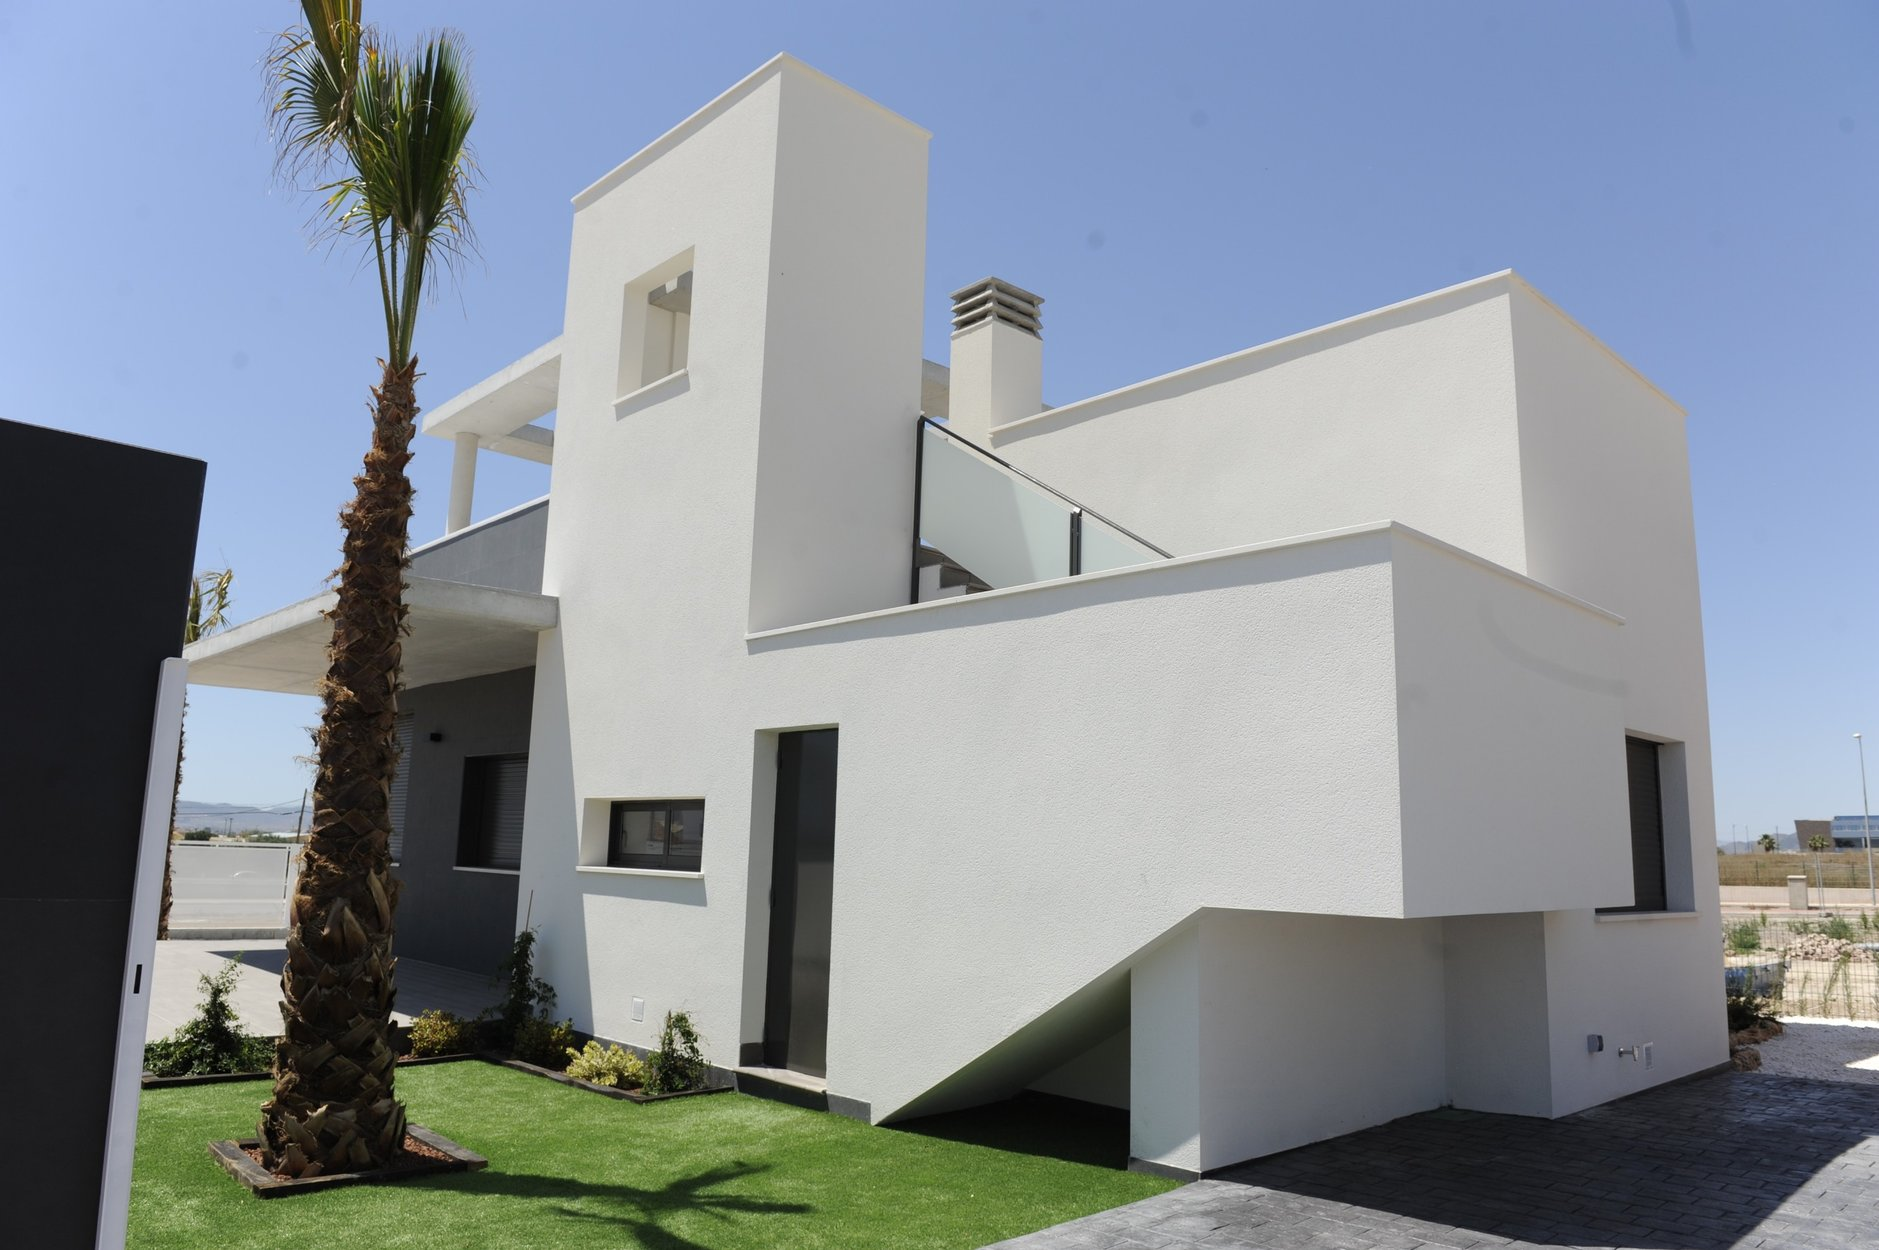 Townhouse for sale in Lorca